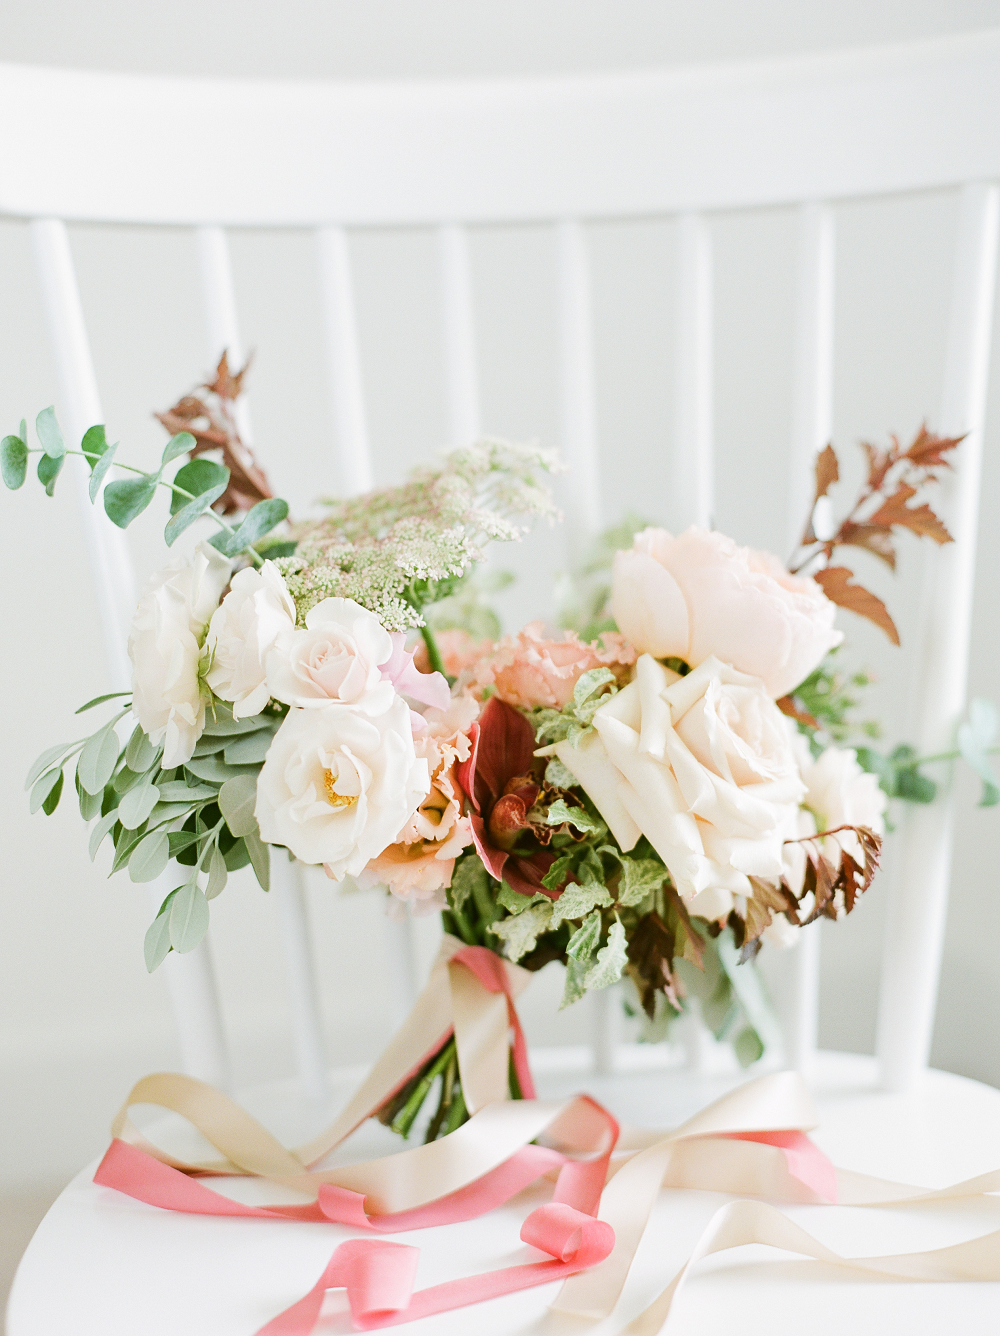 Burgundy and Blush Wedding Inspiration Styled Shoot by Kelly Sweet Photography Pink Ribbon